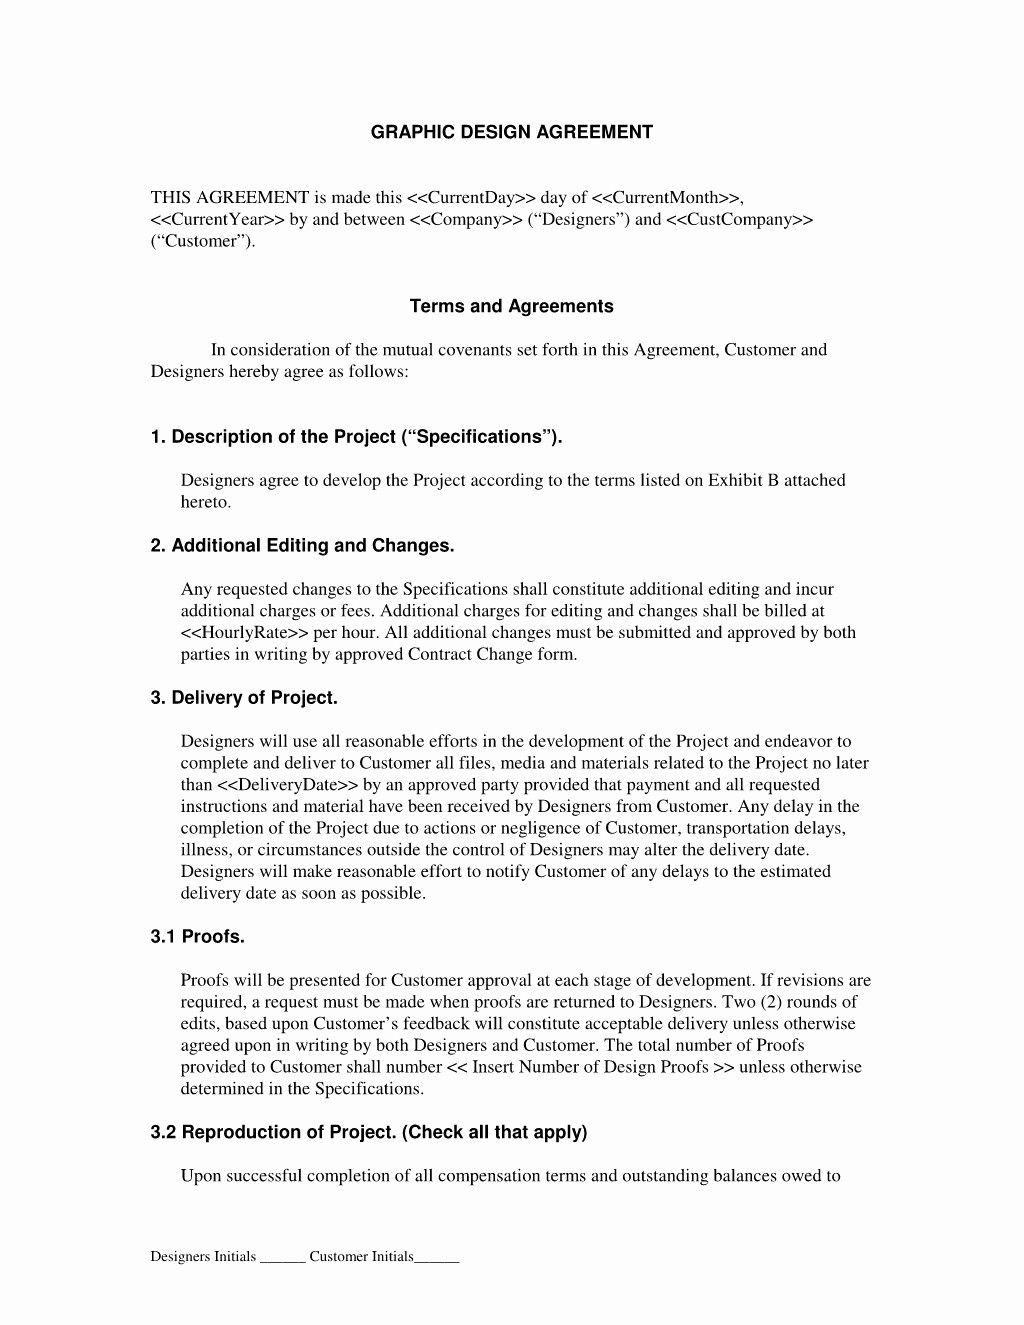 Graphic Design Contract Template Pdf Inspirational Graphic